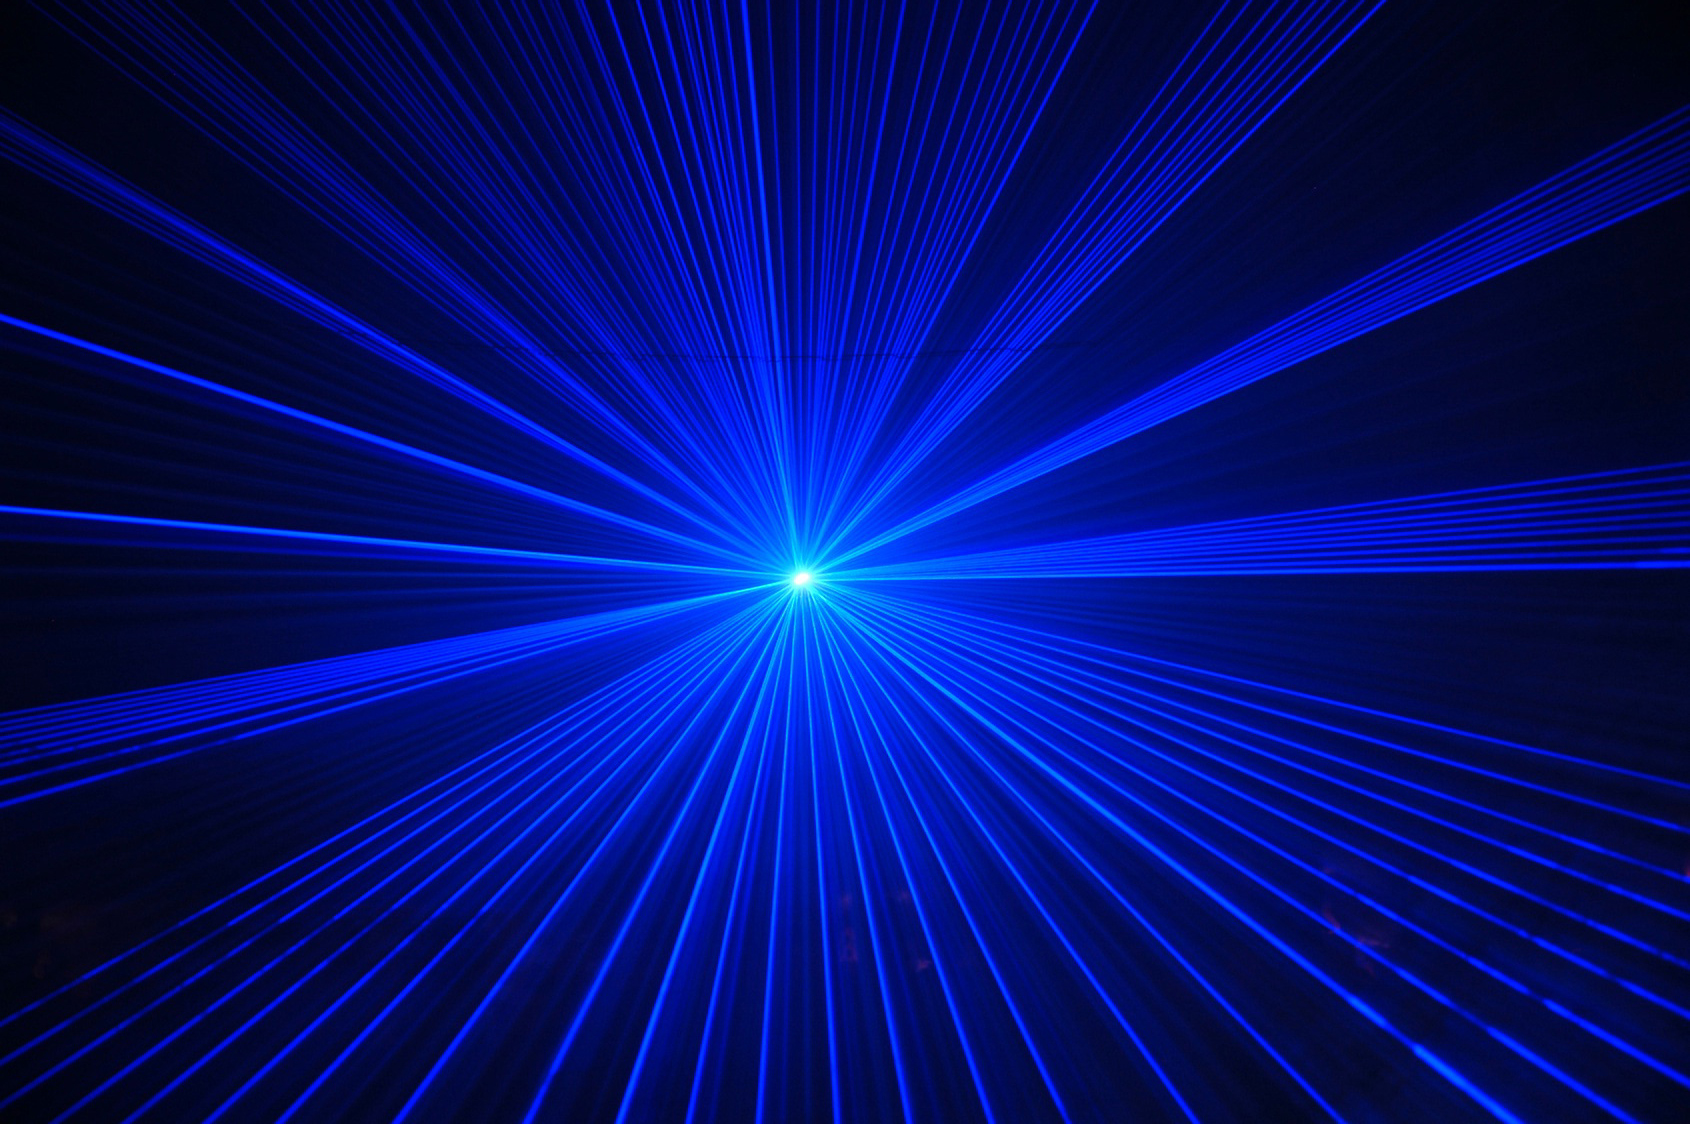 Blue Laser Wallpaper 650.32 Kb